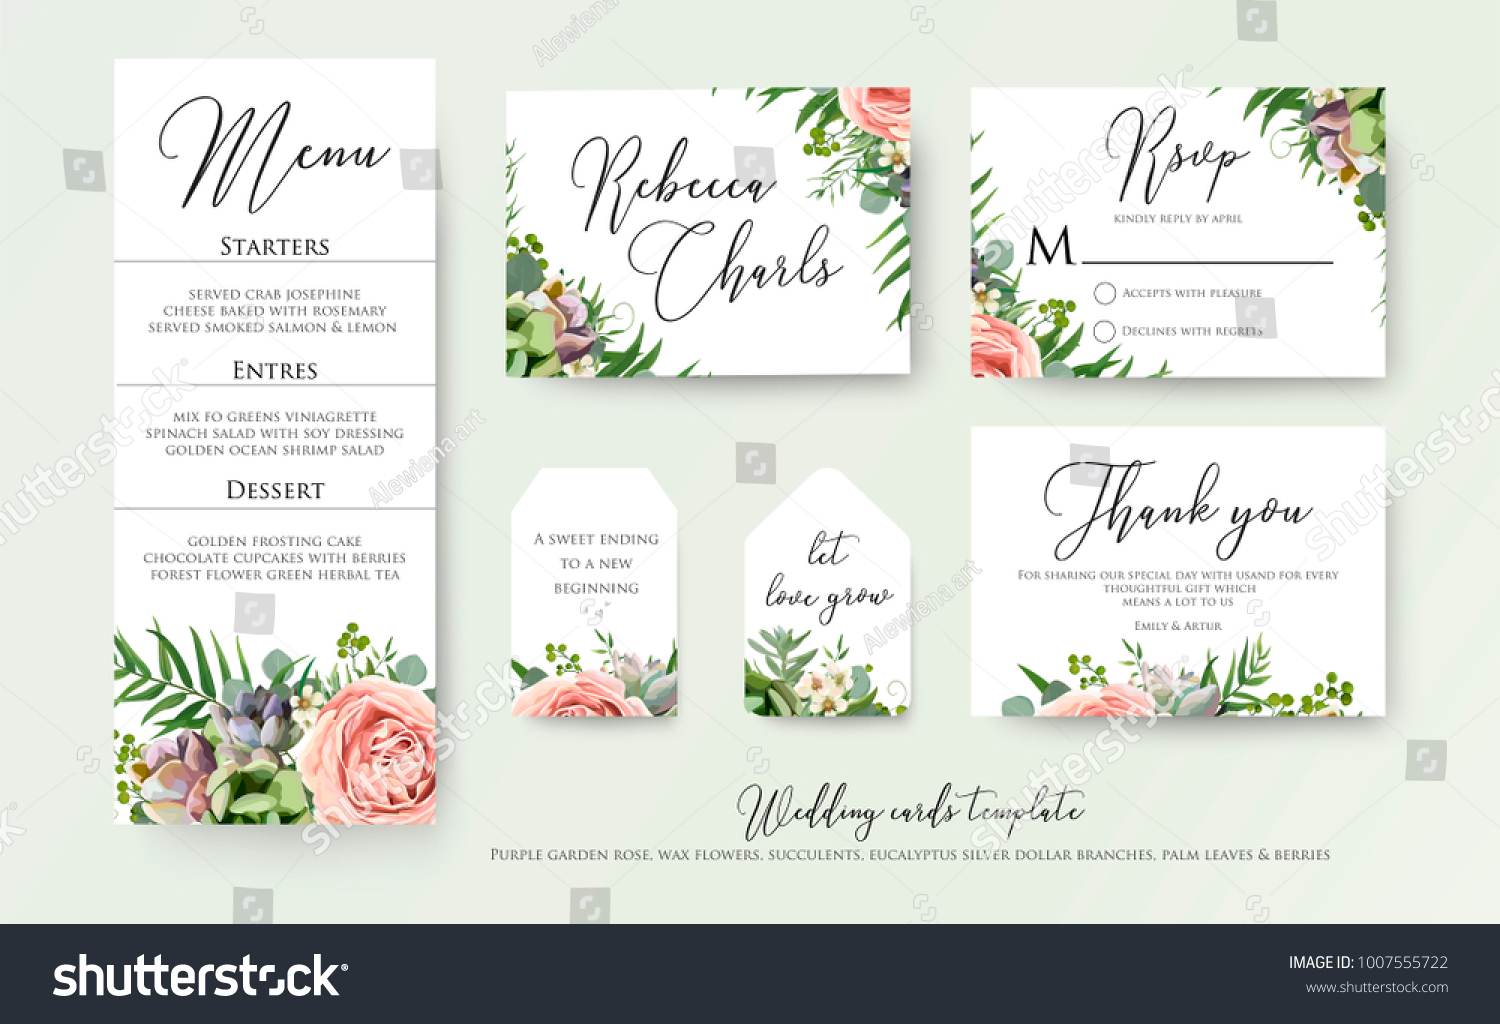 Wedding floral invite thank you, rsvp label cards Design: lavender pink violet garden rose, green tropical palm leaf greenery eucalyptus branches decoration. Vector elegant watercolor rustic template  #1007555722